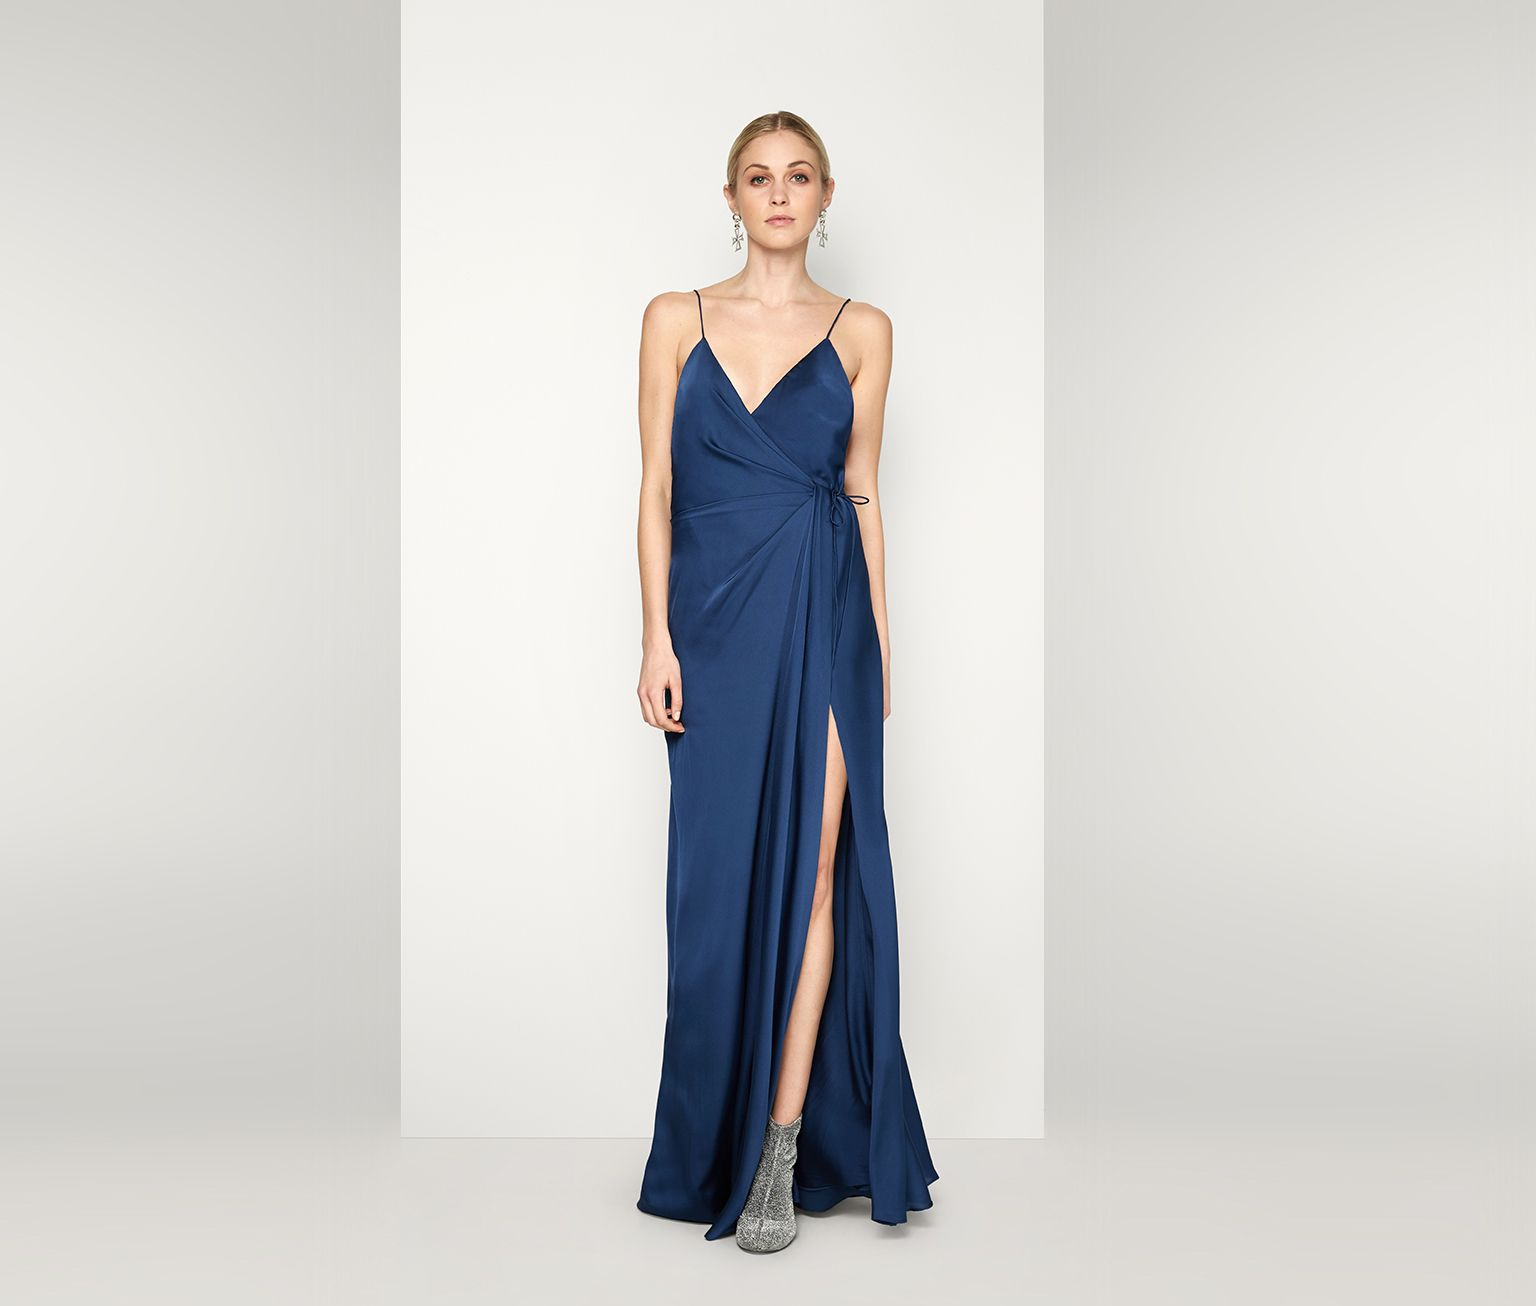 793ce53c4f285 The Auriga  either my dress in white (obvi) or the bridesmaids in black. I  do like this color blue